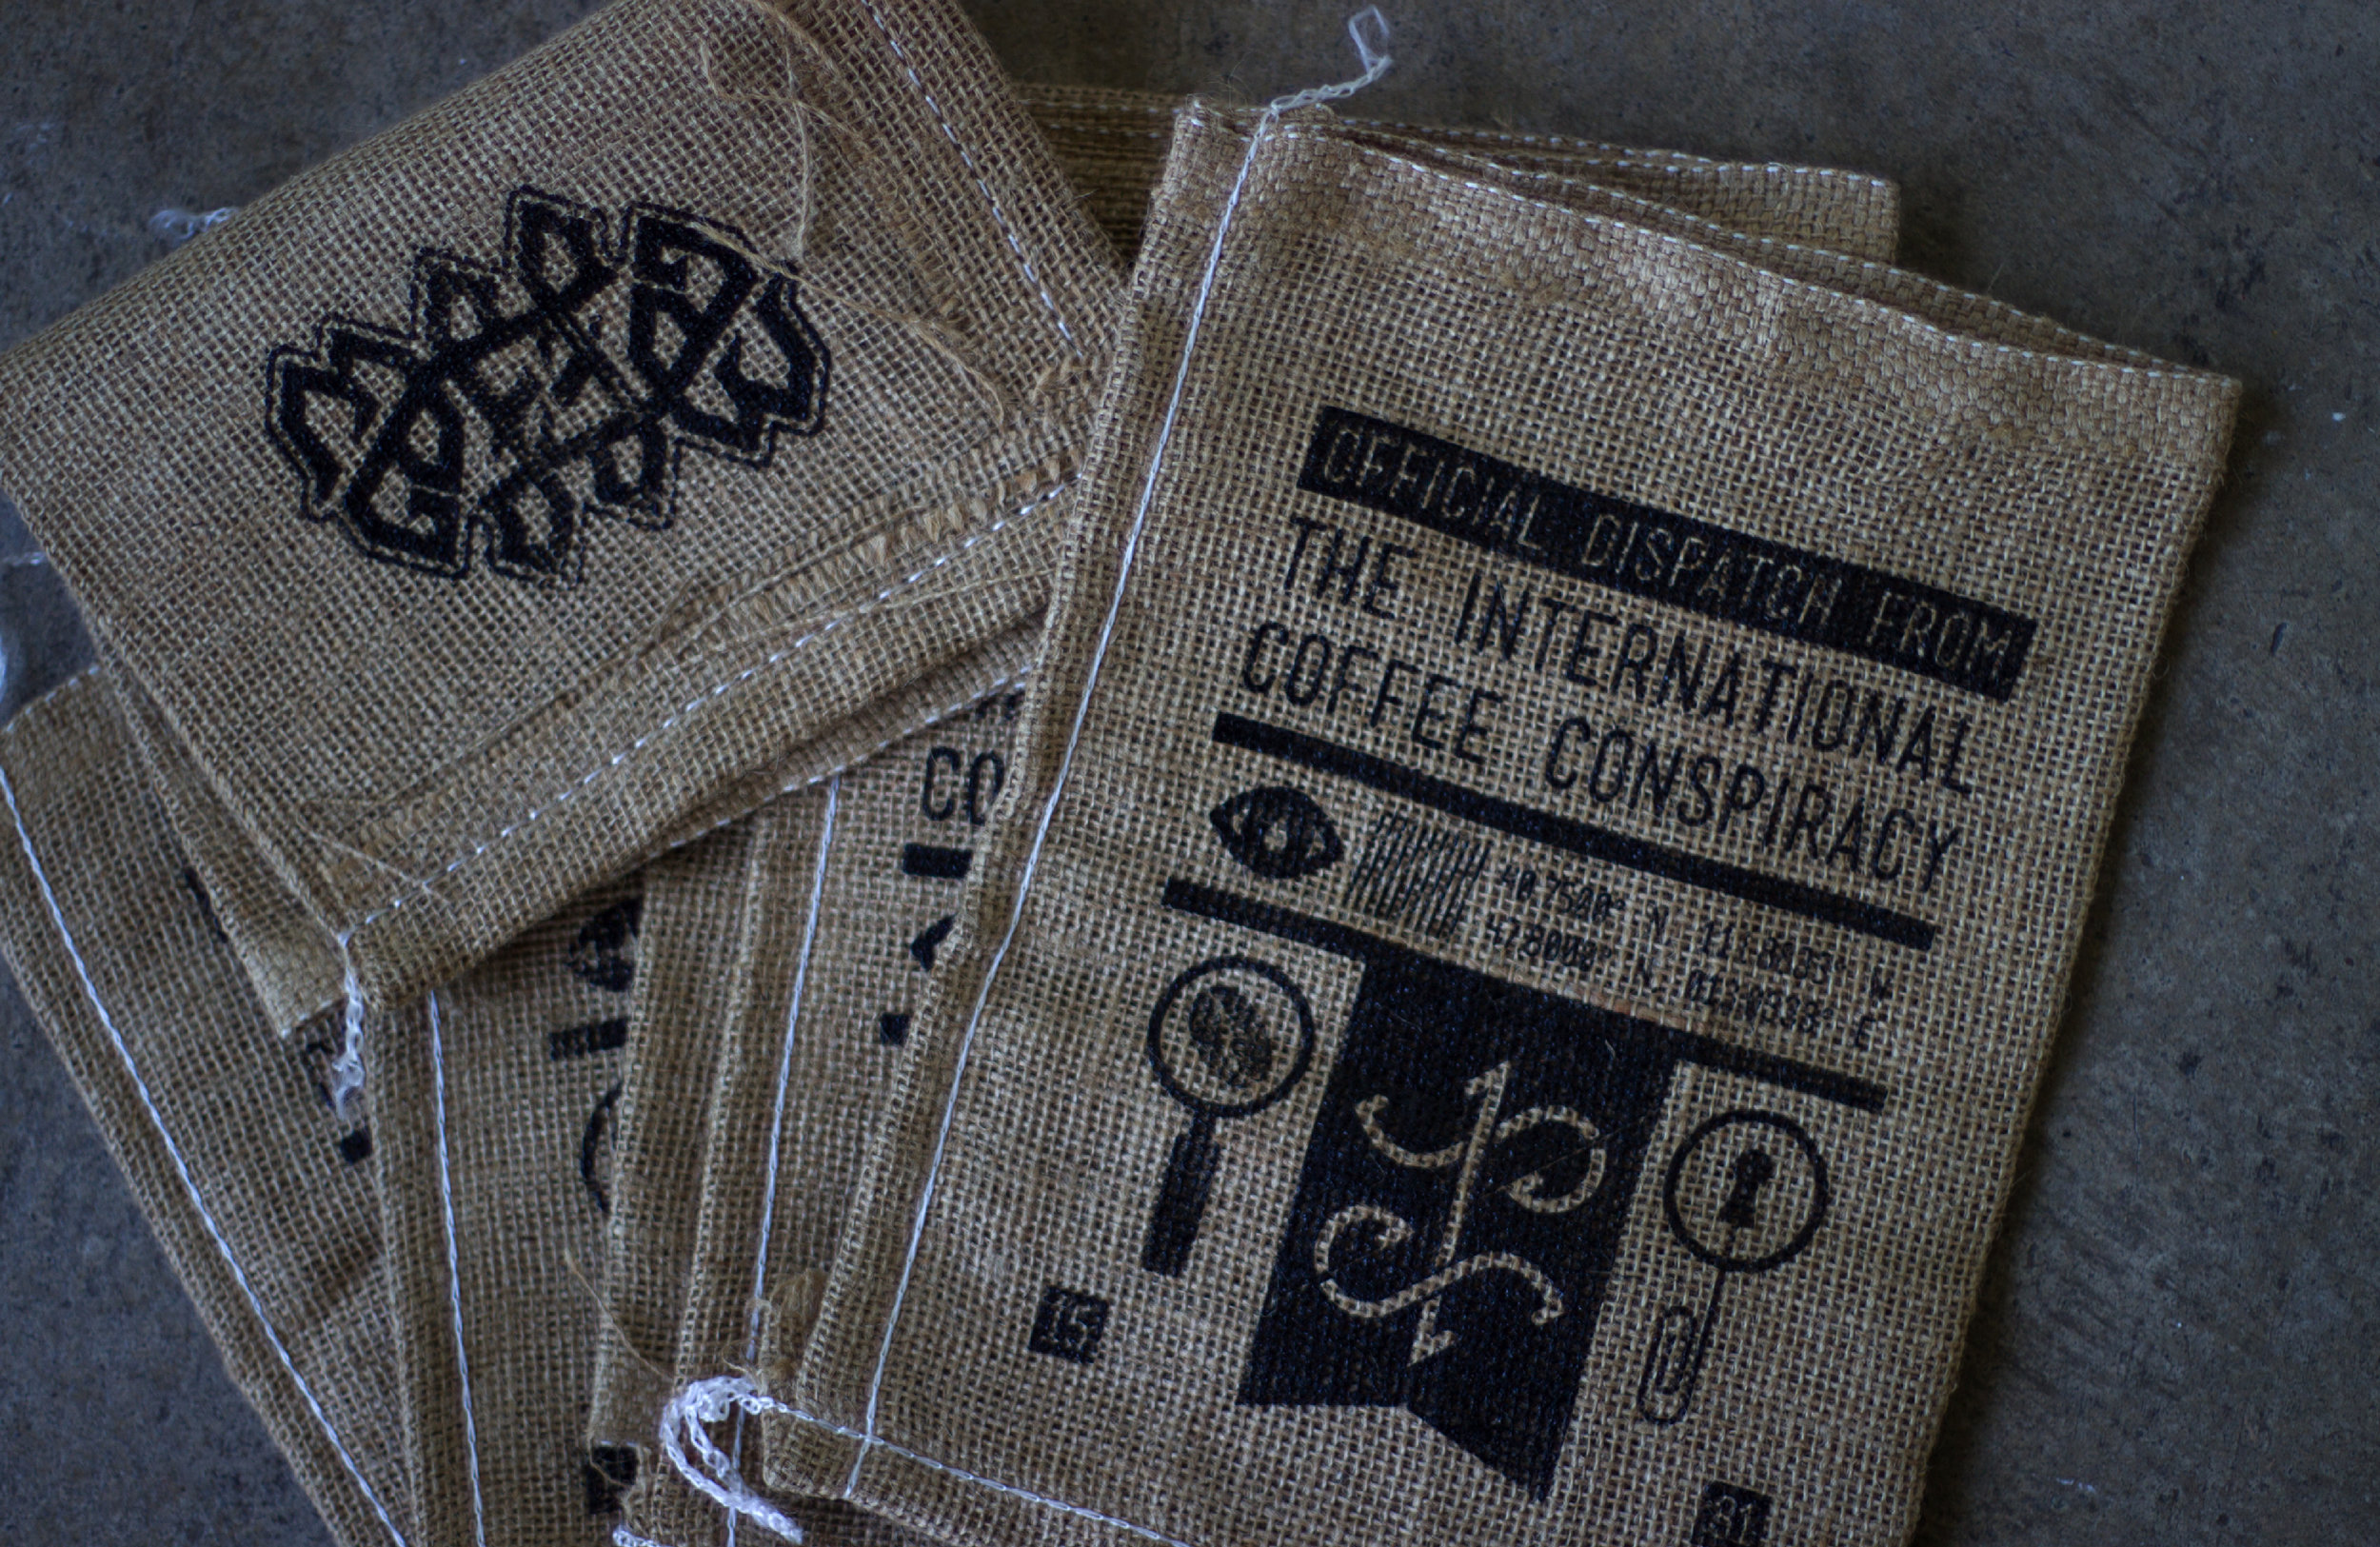 Hand-printed burlap bags produced for zine packaging.